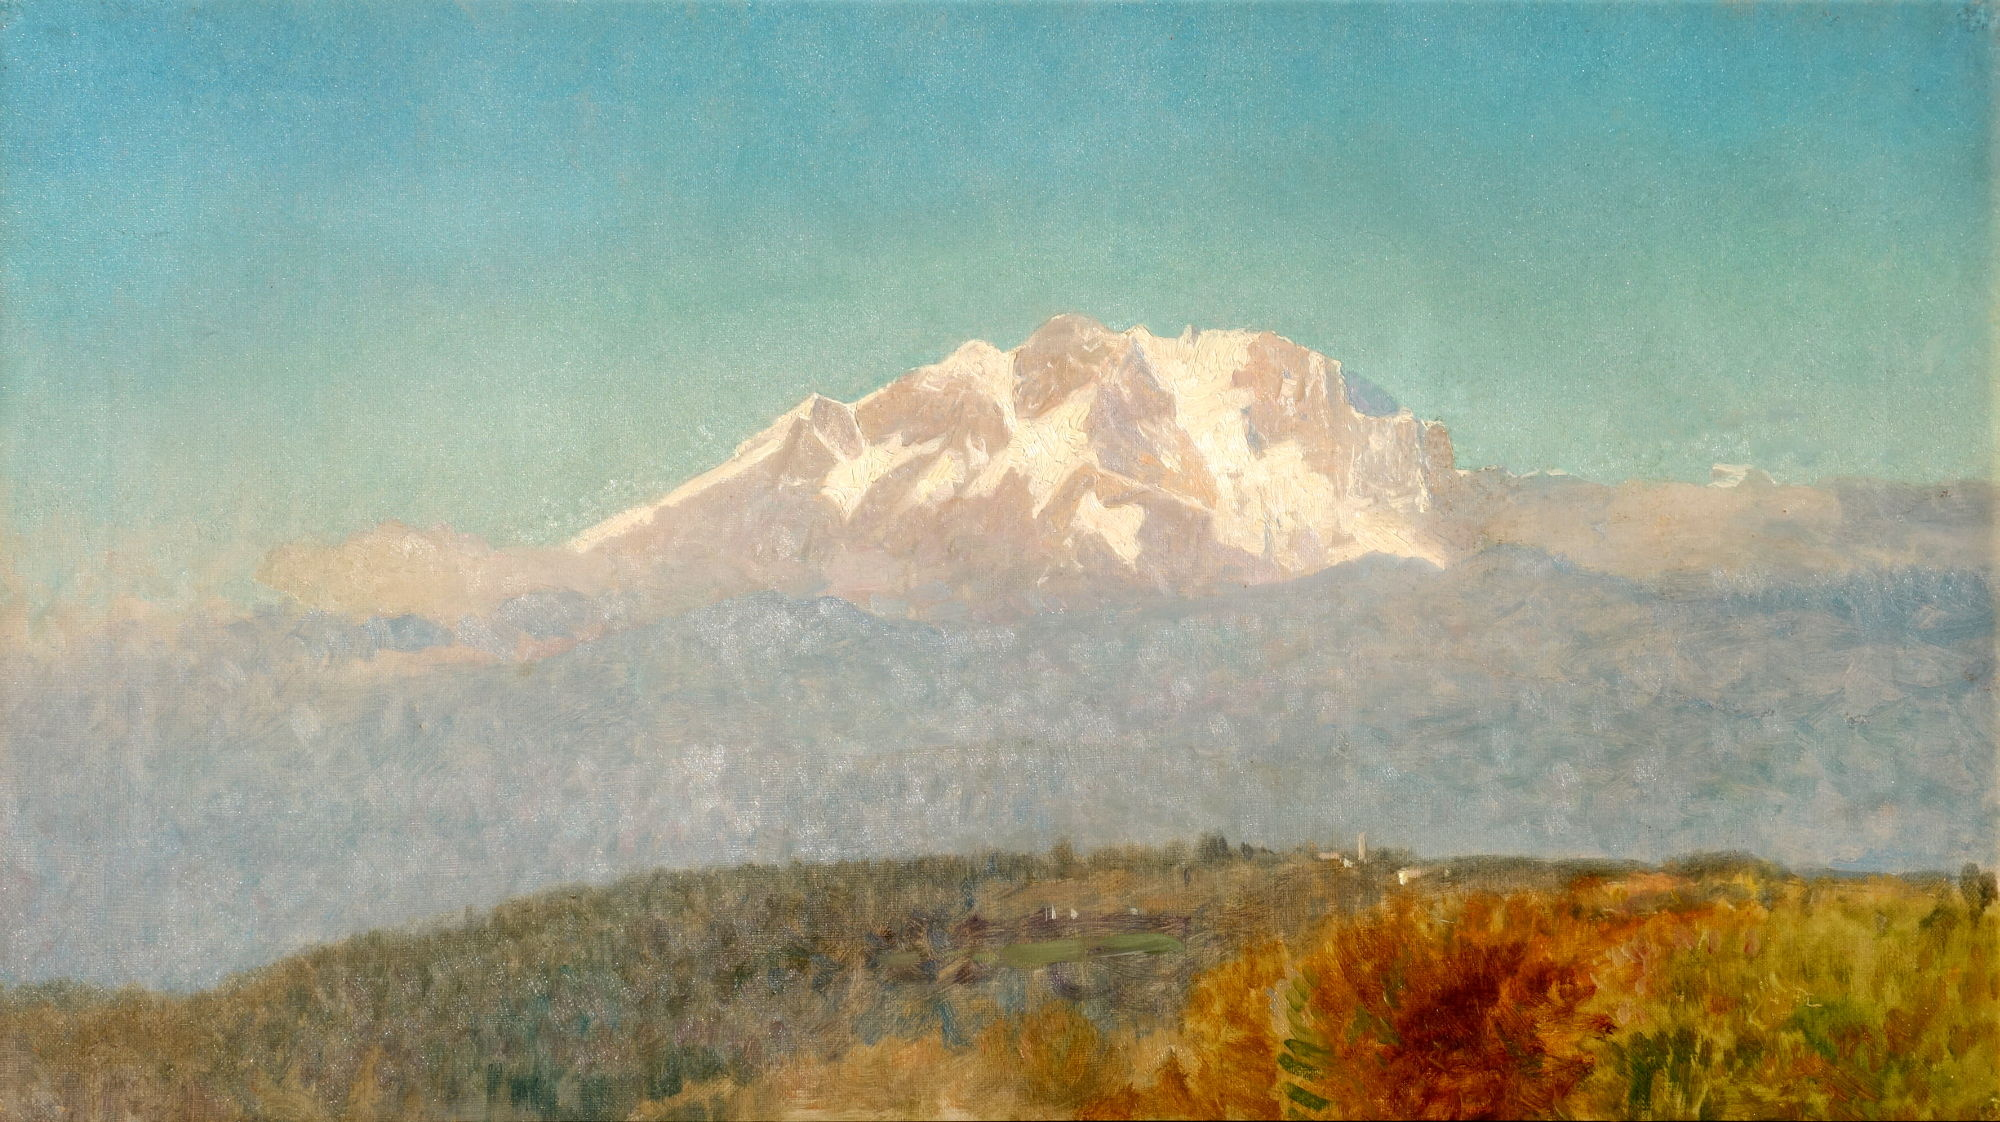 William Stanley Haseltine: Swiss mountain landscape, ca. 1880, Öl auf Leinwand, 35 x 63 cm, Privatbesitz(c) Joe Amberg